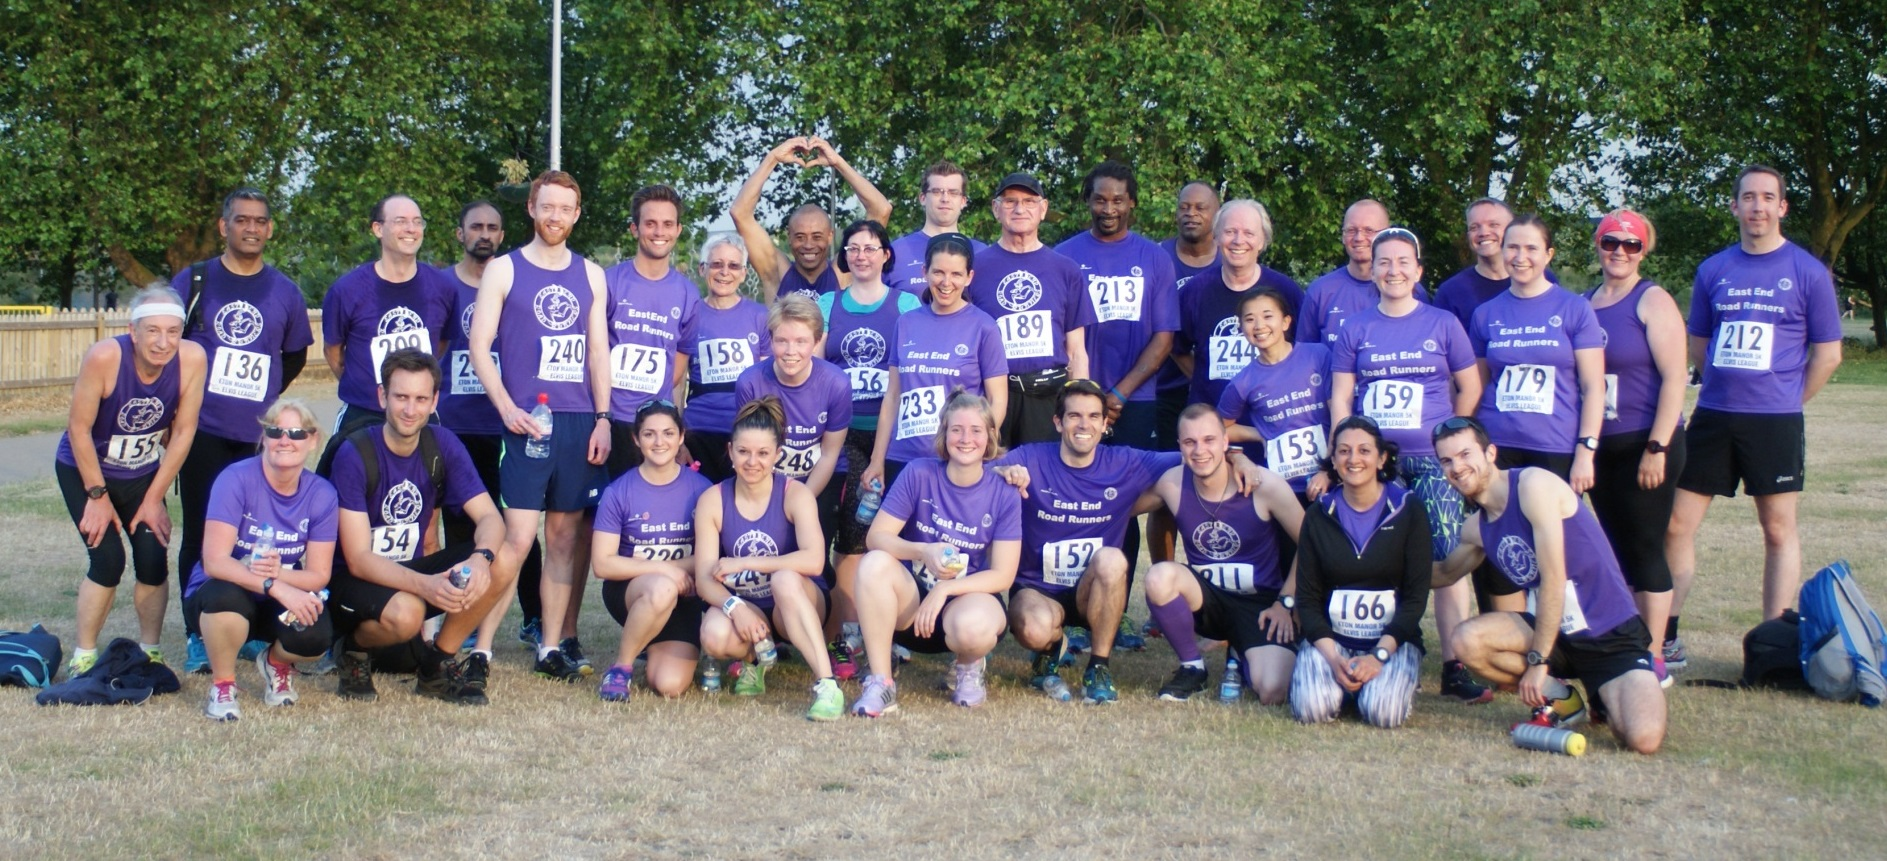 East End Road Runners 2015